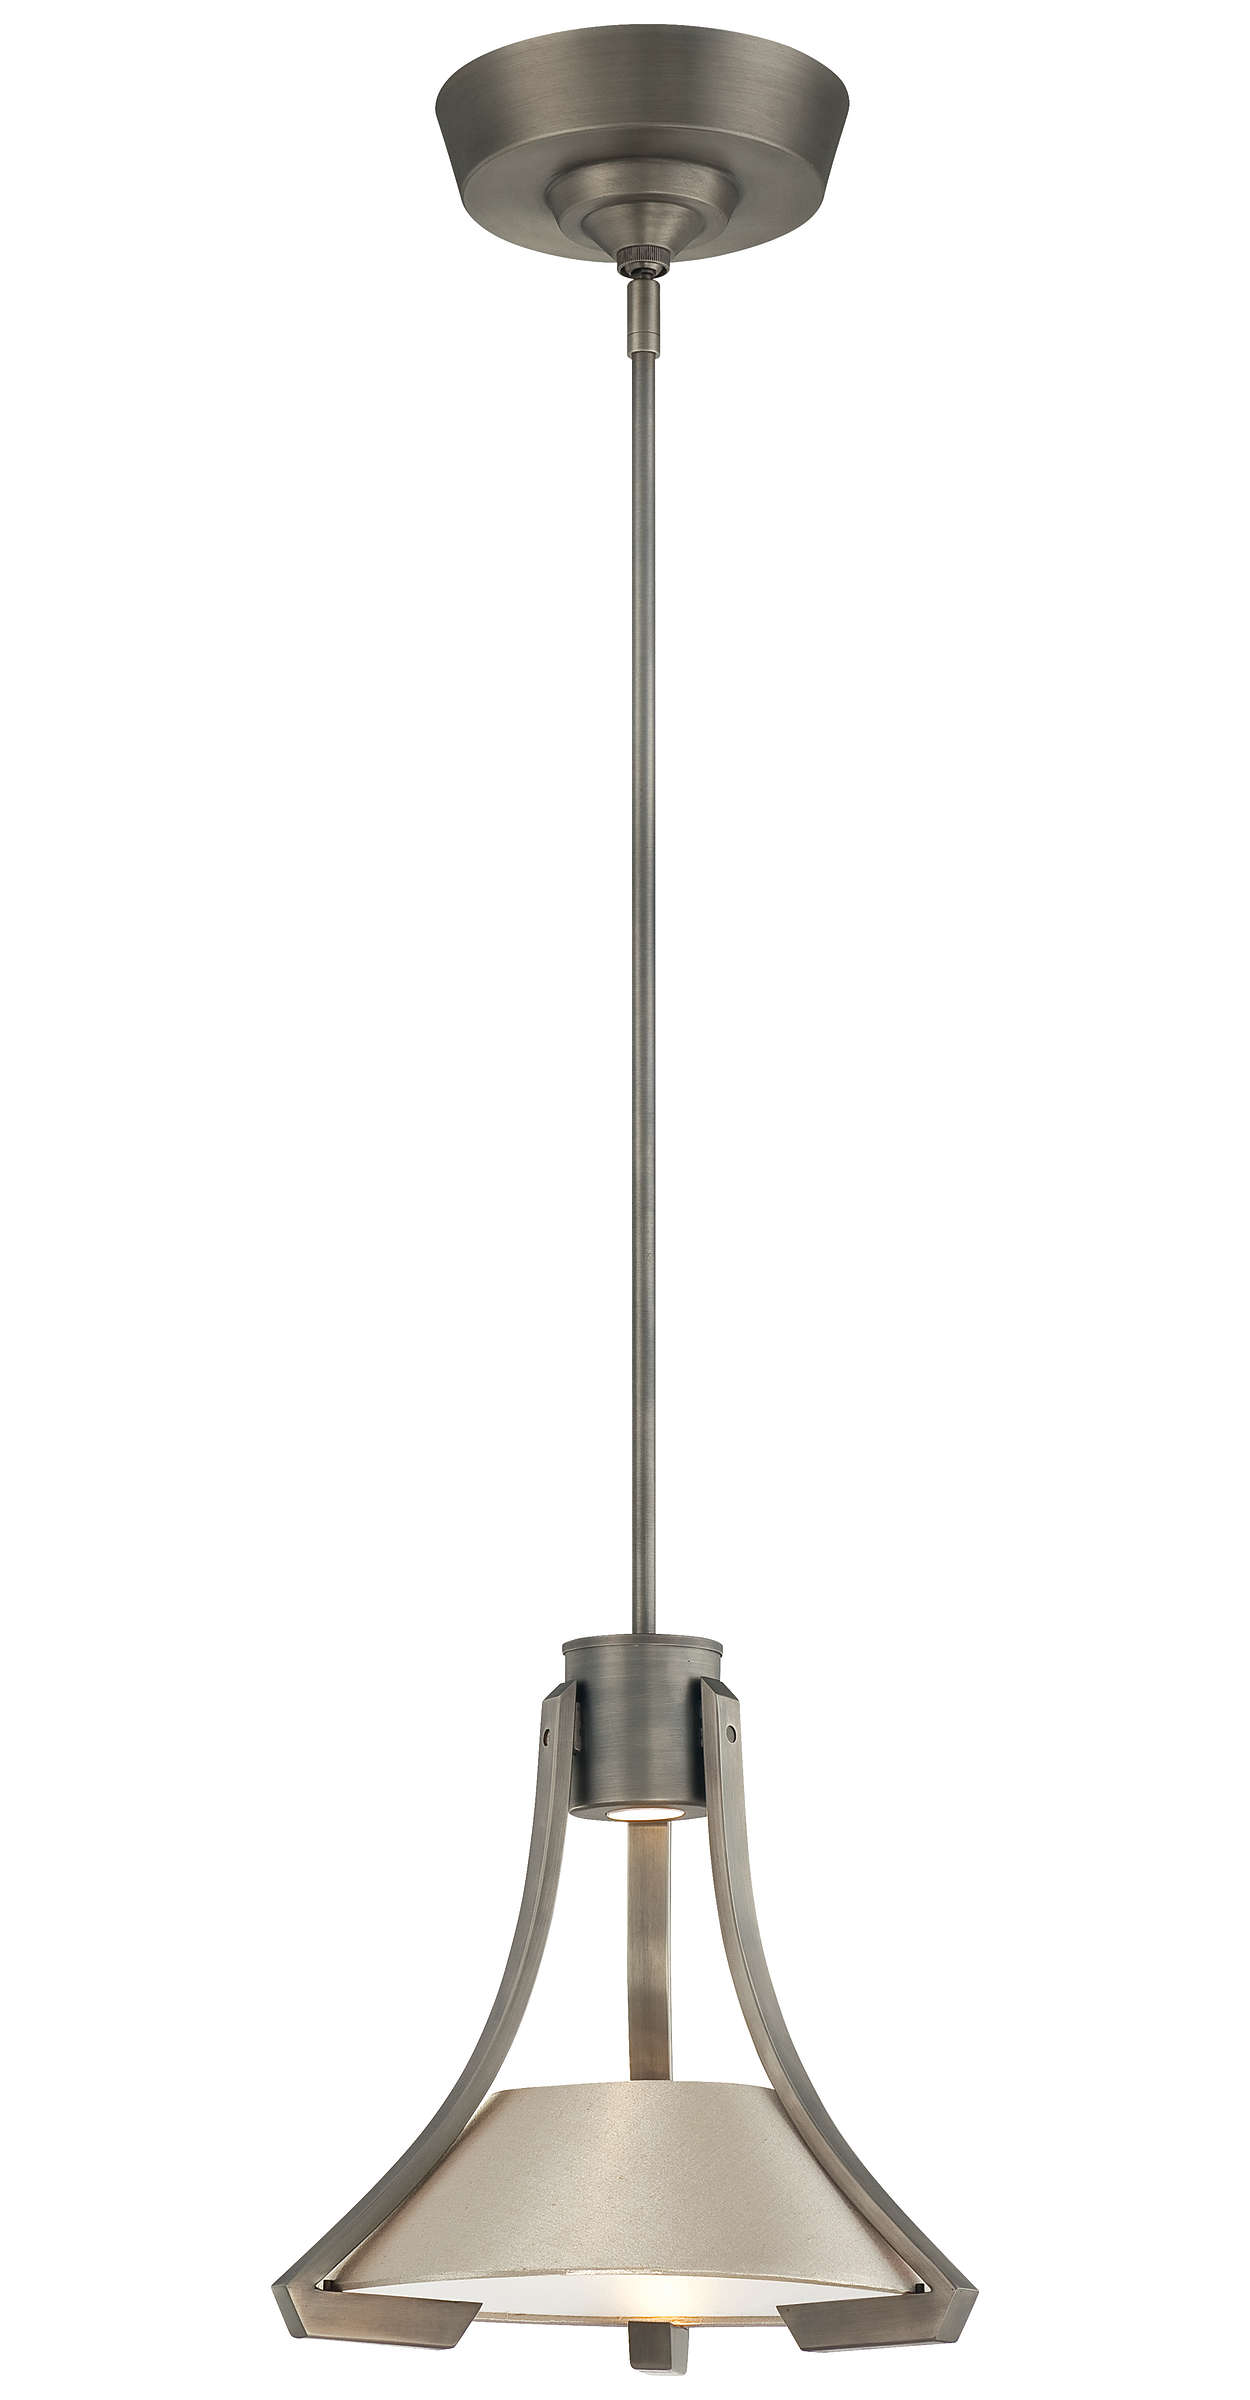 Beaux LED Pendant in Gun Metal finish